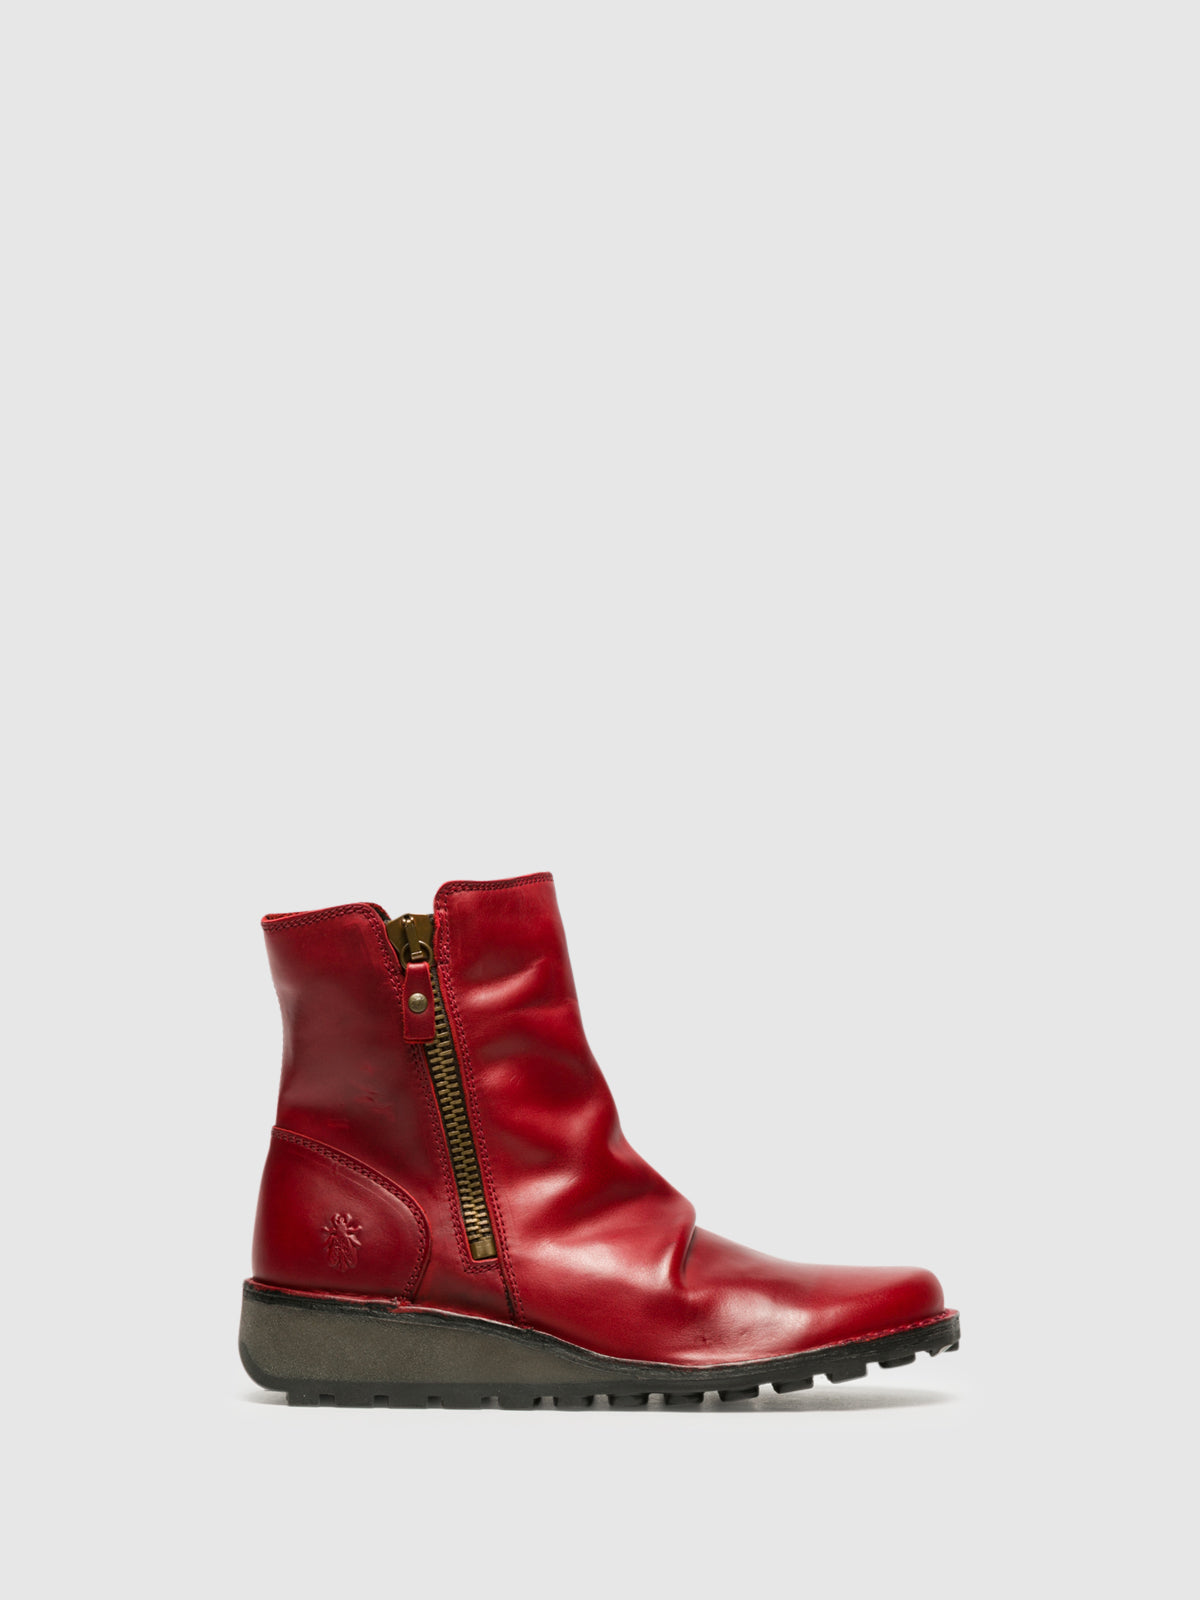 Fly London Red Zip Up Ankle Boots